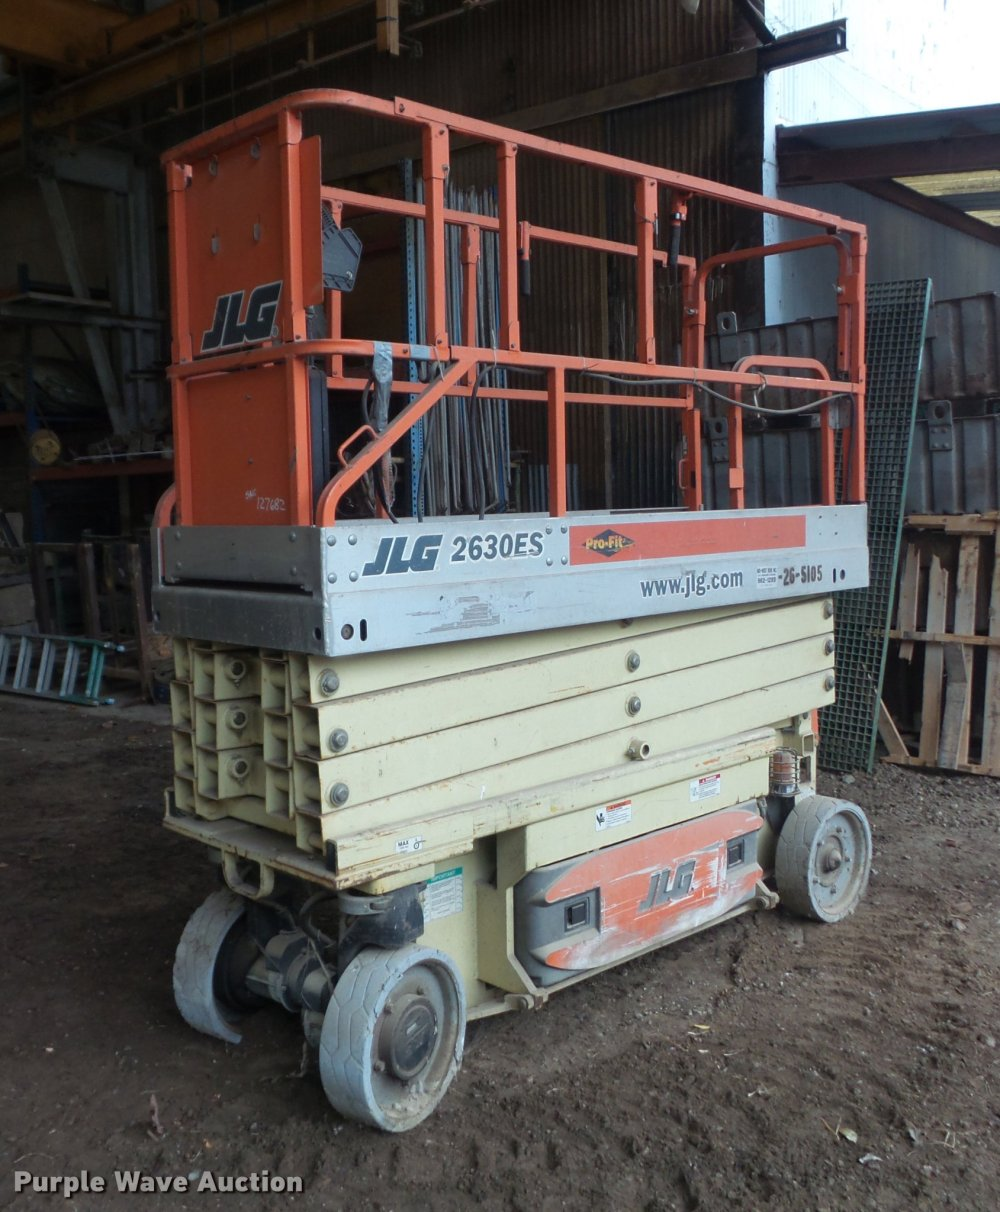 medium resolution of 2005 jlg 2630es scissor lift for sale in missouri